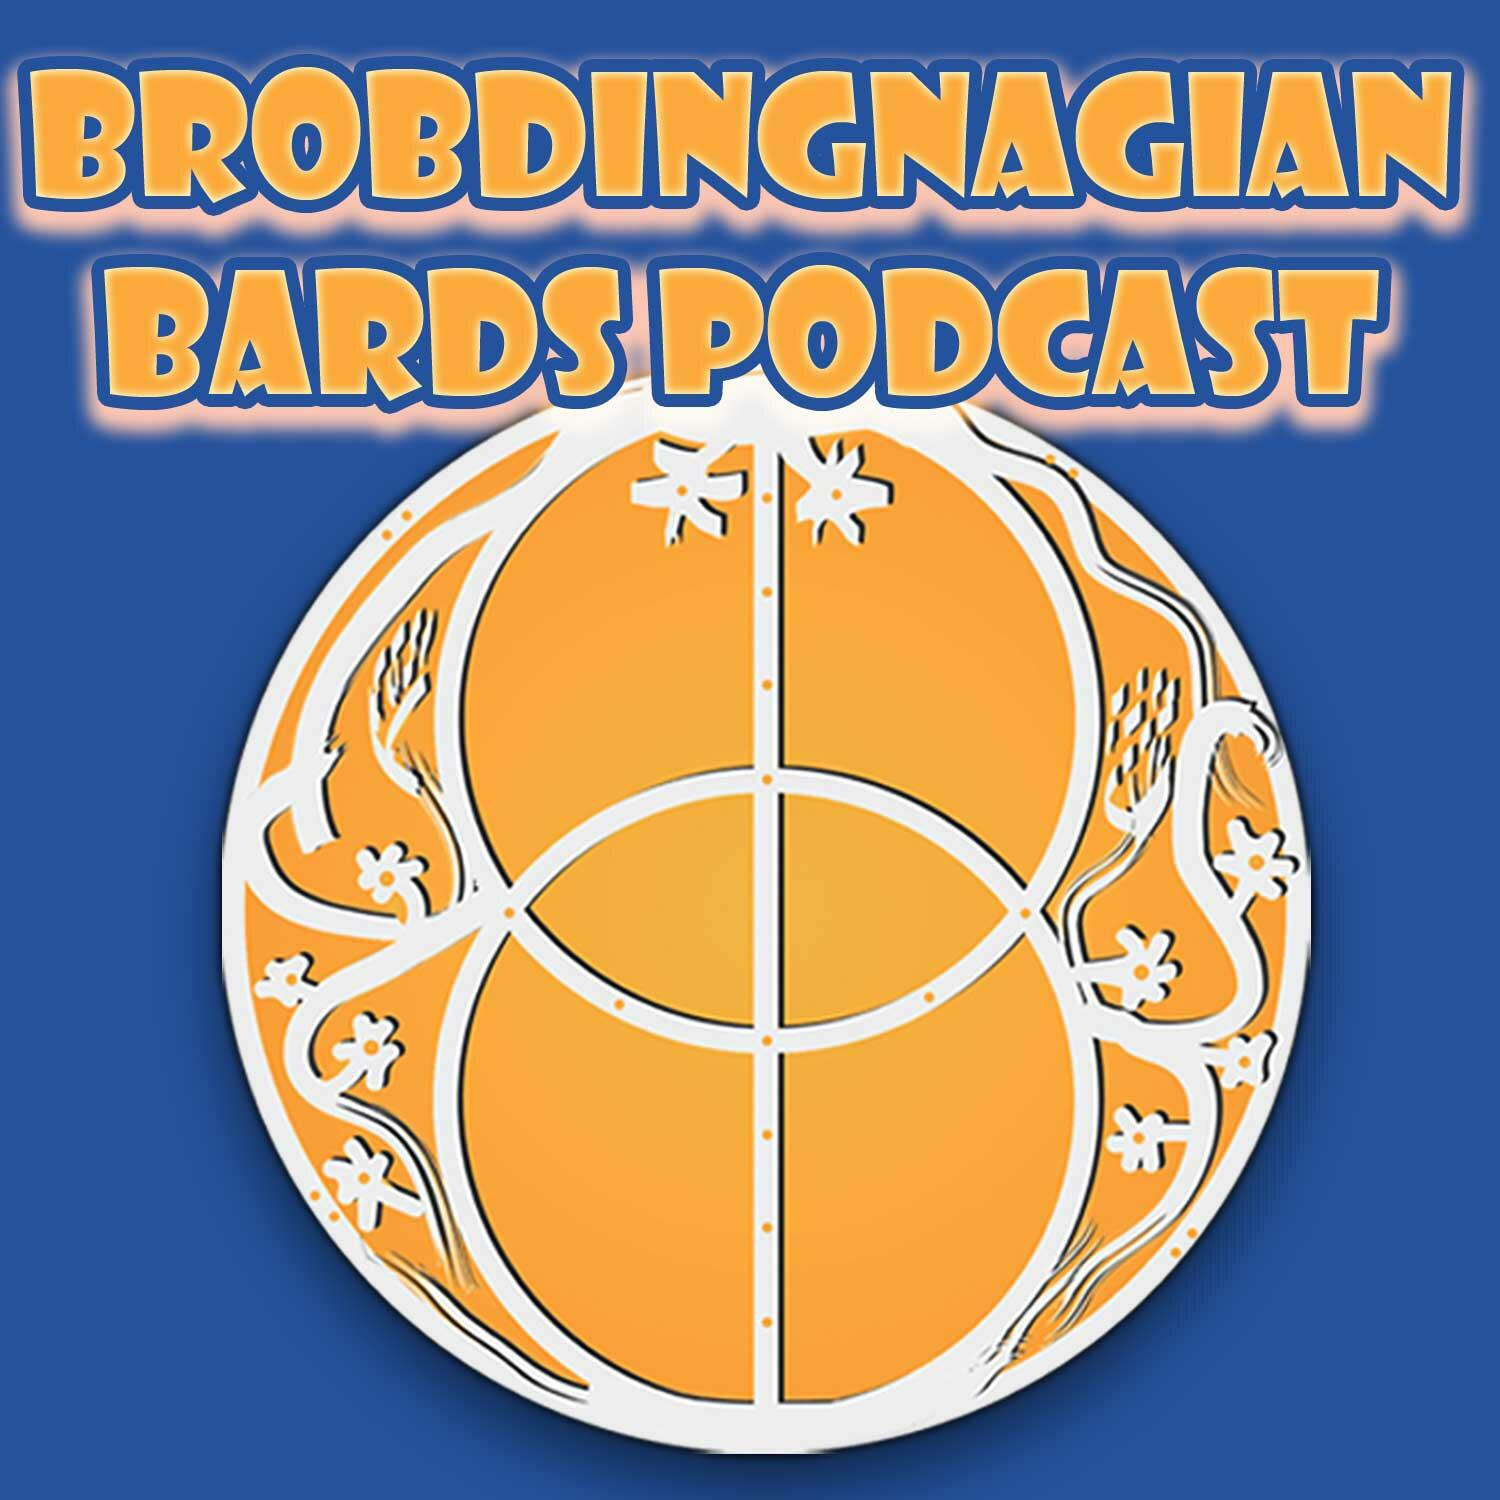 Brobdingnagian Bards Podcast